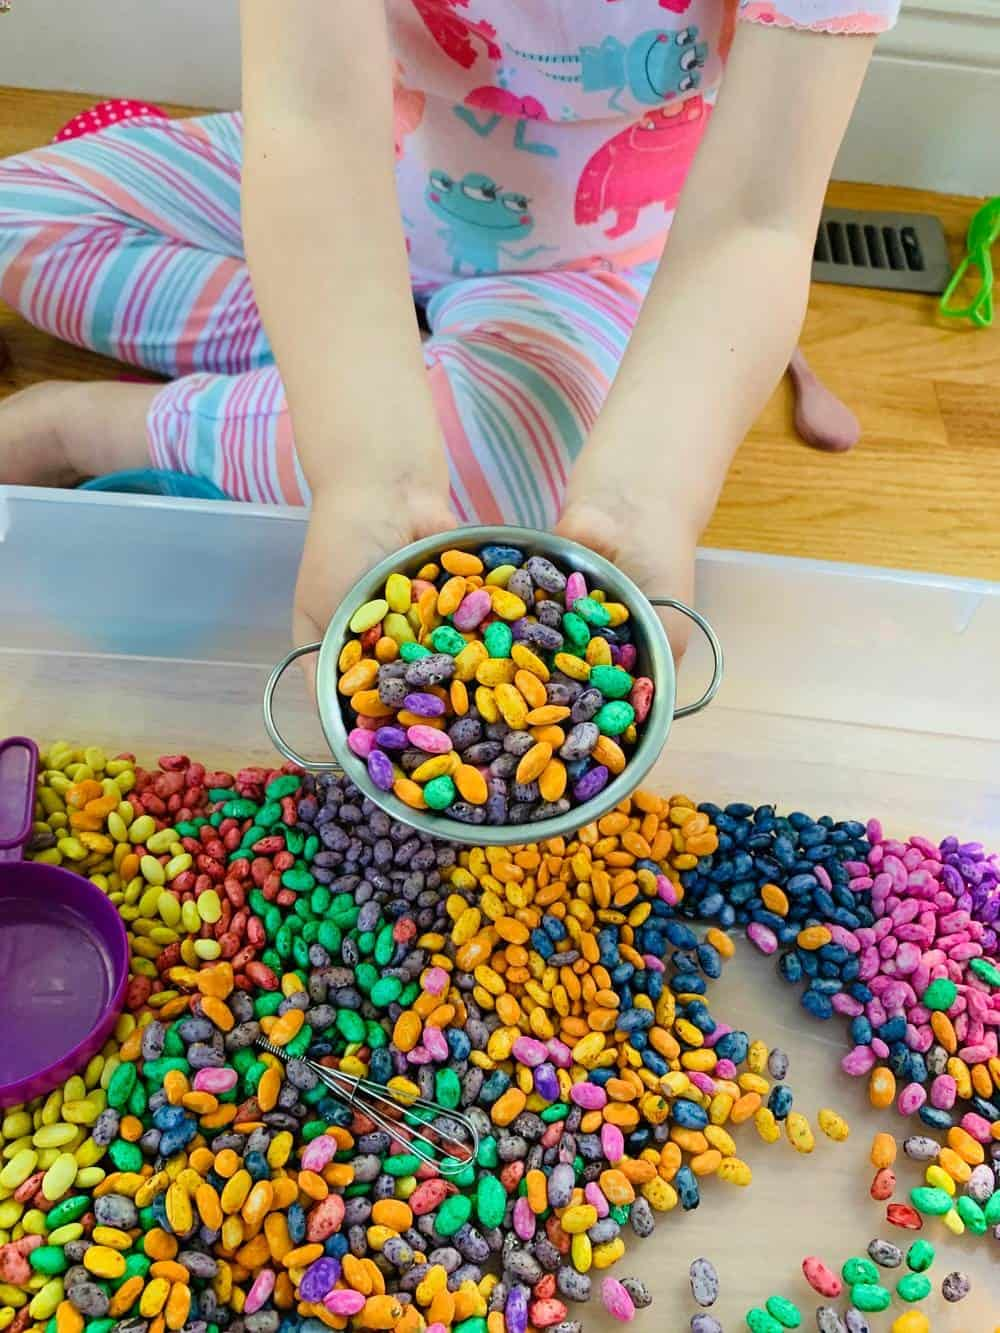 playing with magic beans dyed and colored for a sensory bin